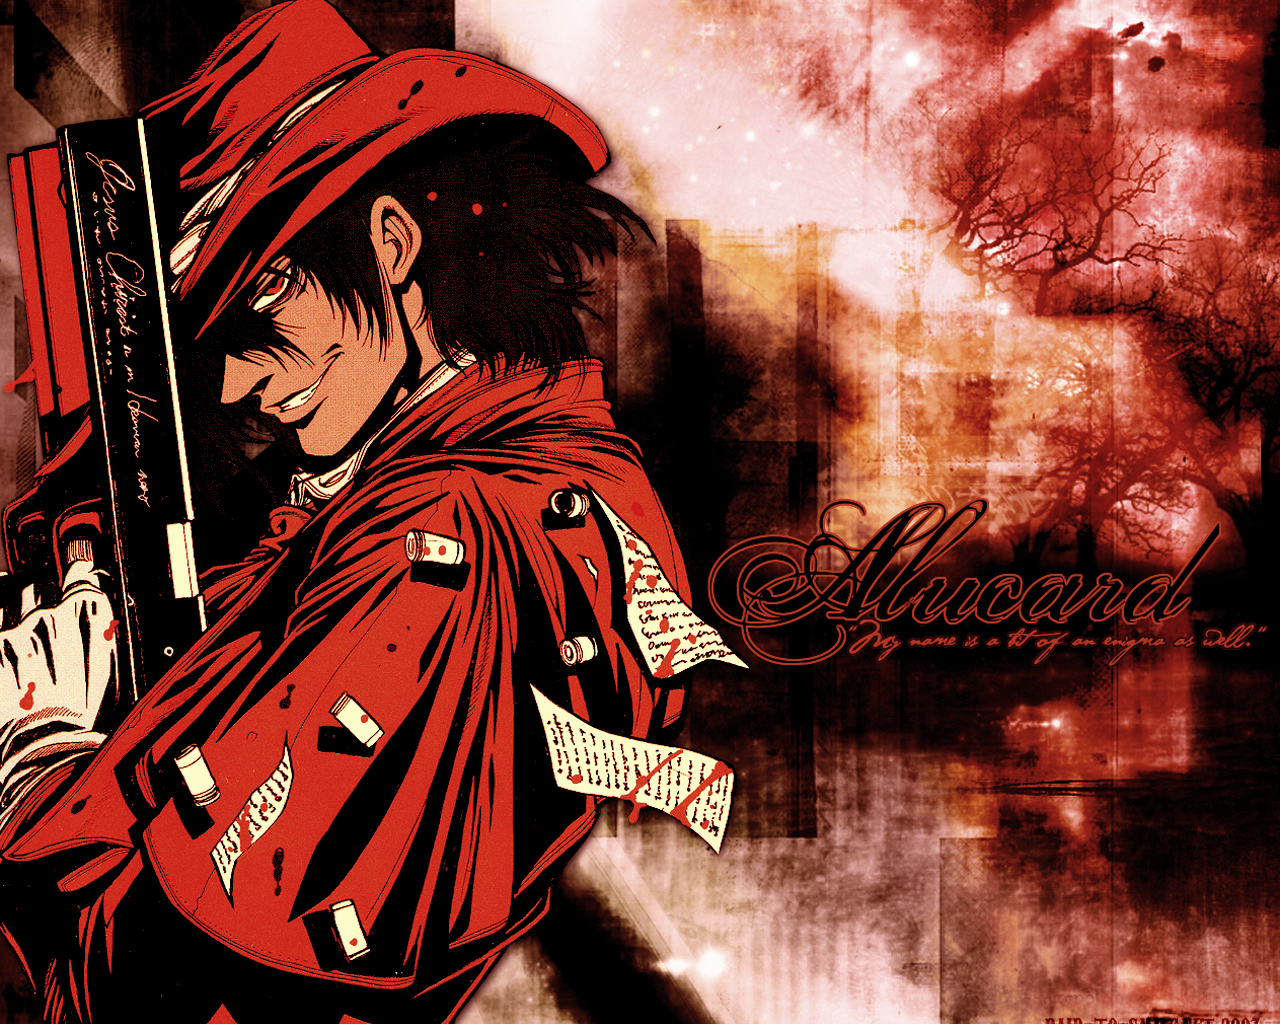 Alucard hellsing wallpaper zerochan anime image board - Anime hellsing wallpaper ...